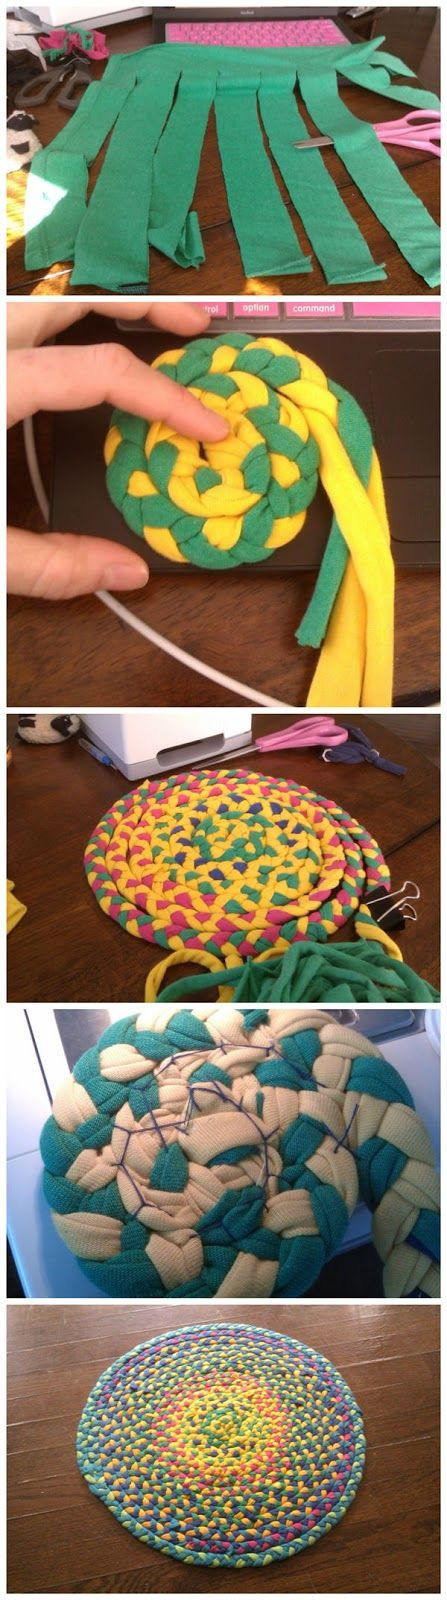 {DIY Braided Rug from T-Shirts}